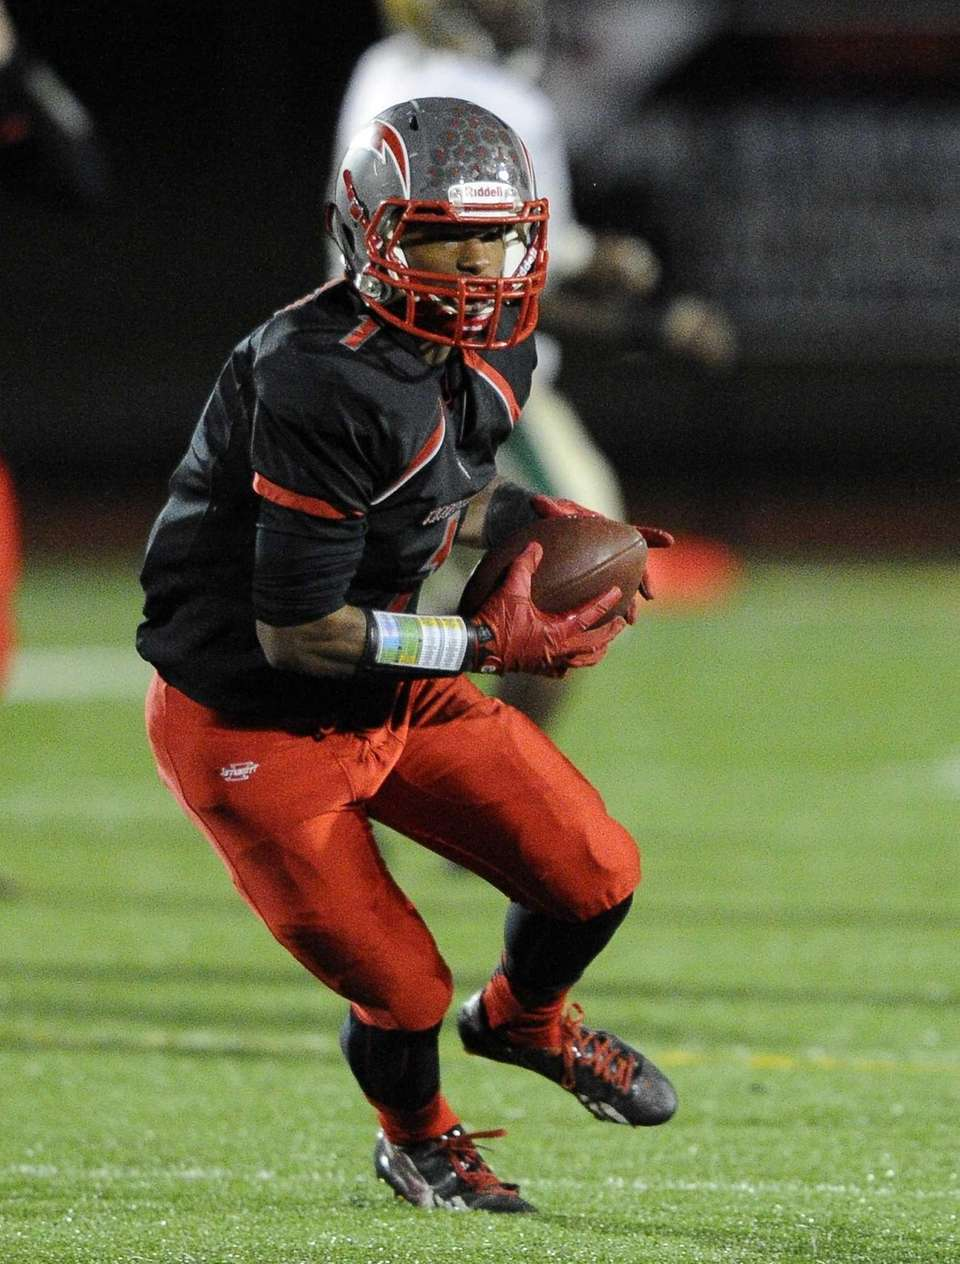 Connetquot's Carlton Woodie runs the football against Longwood